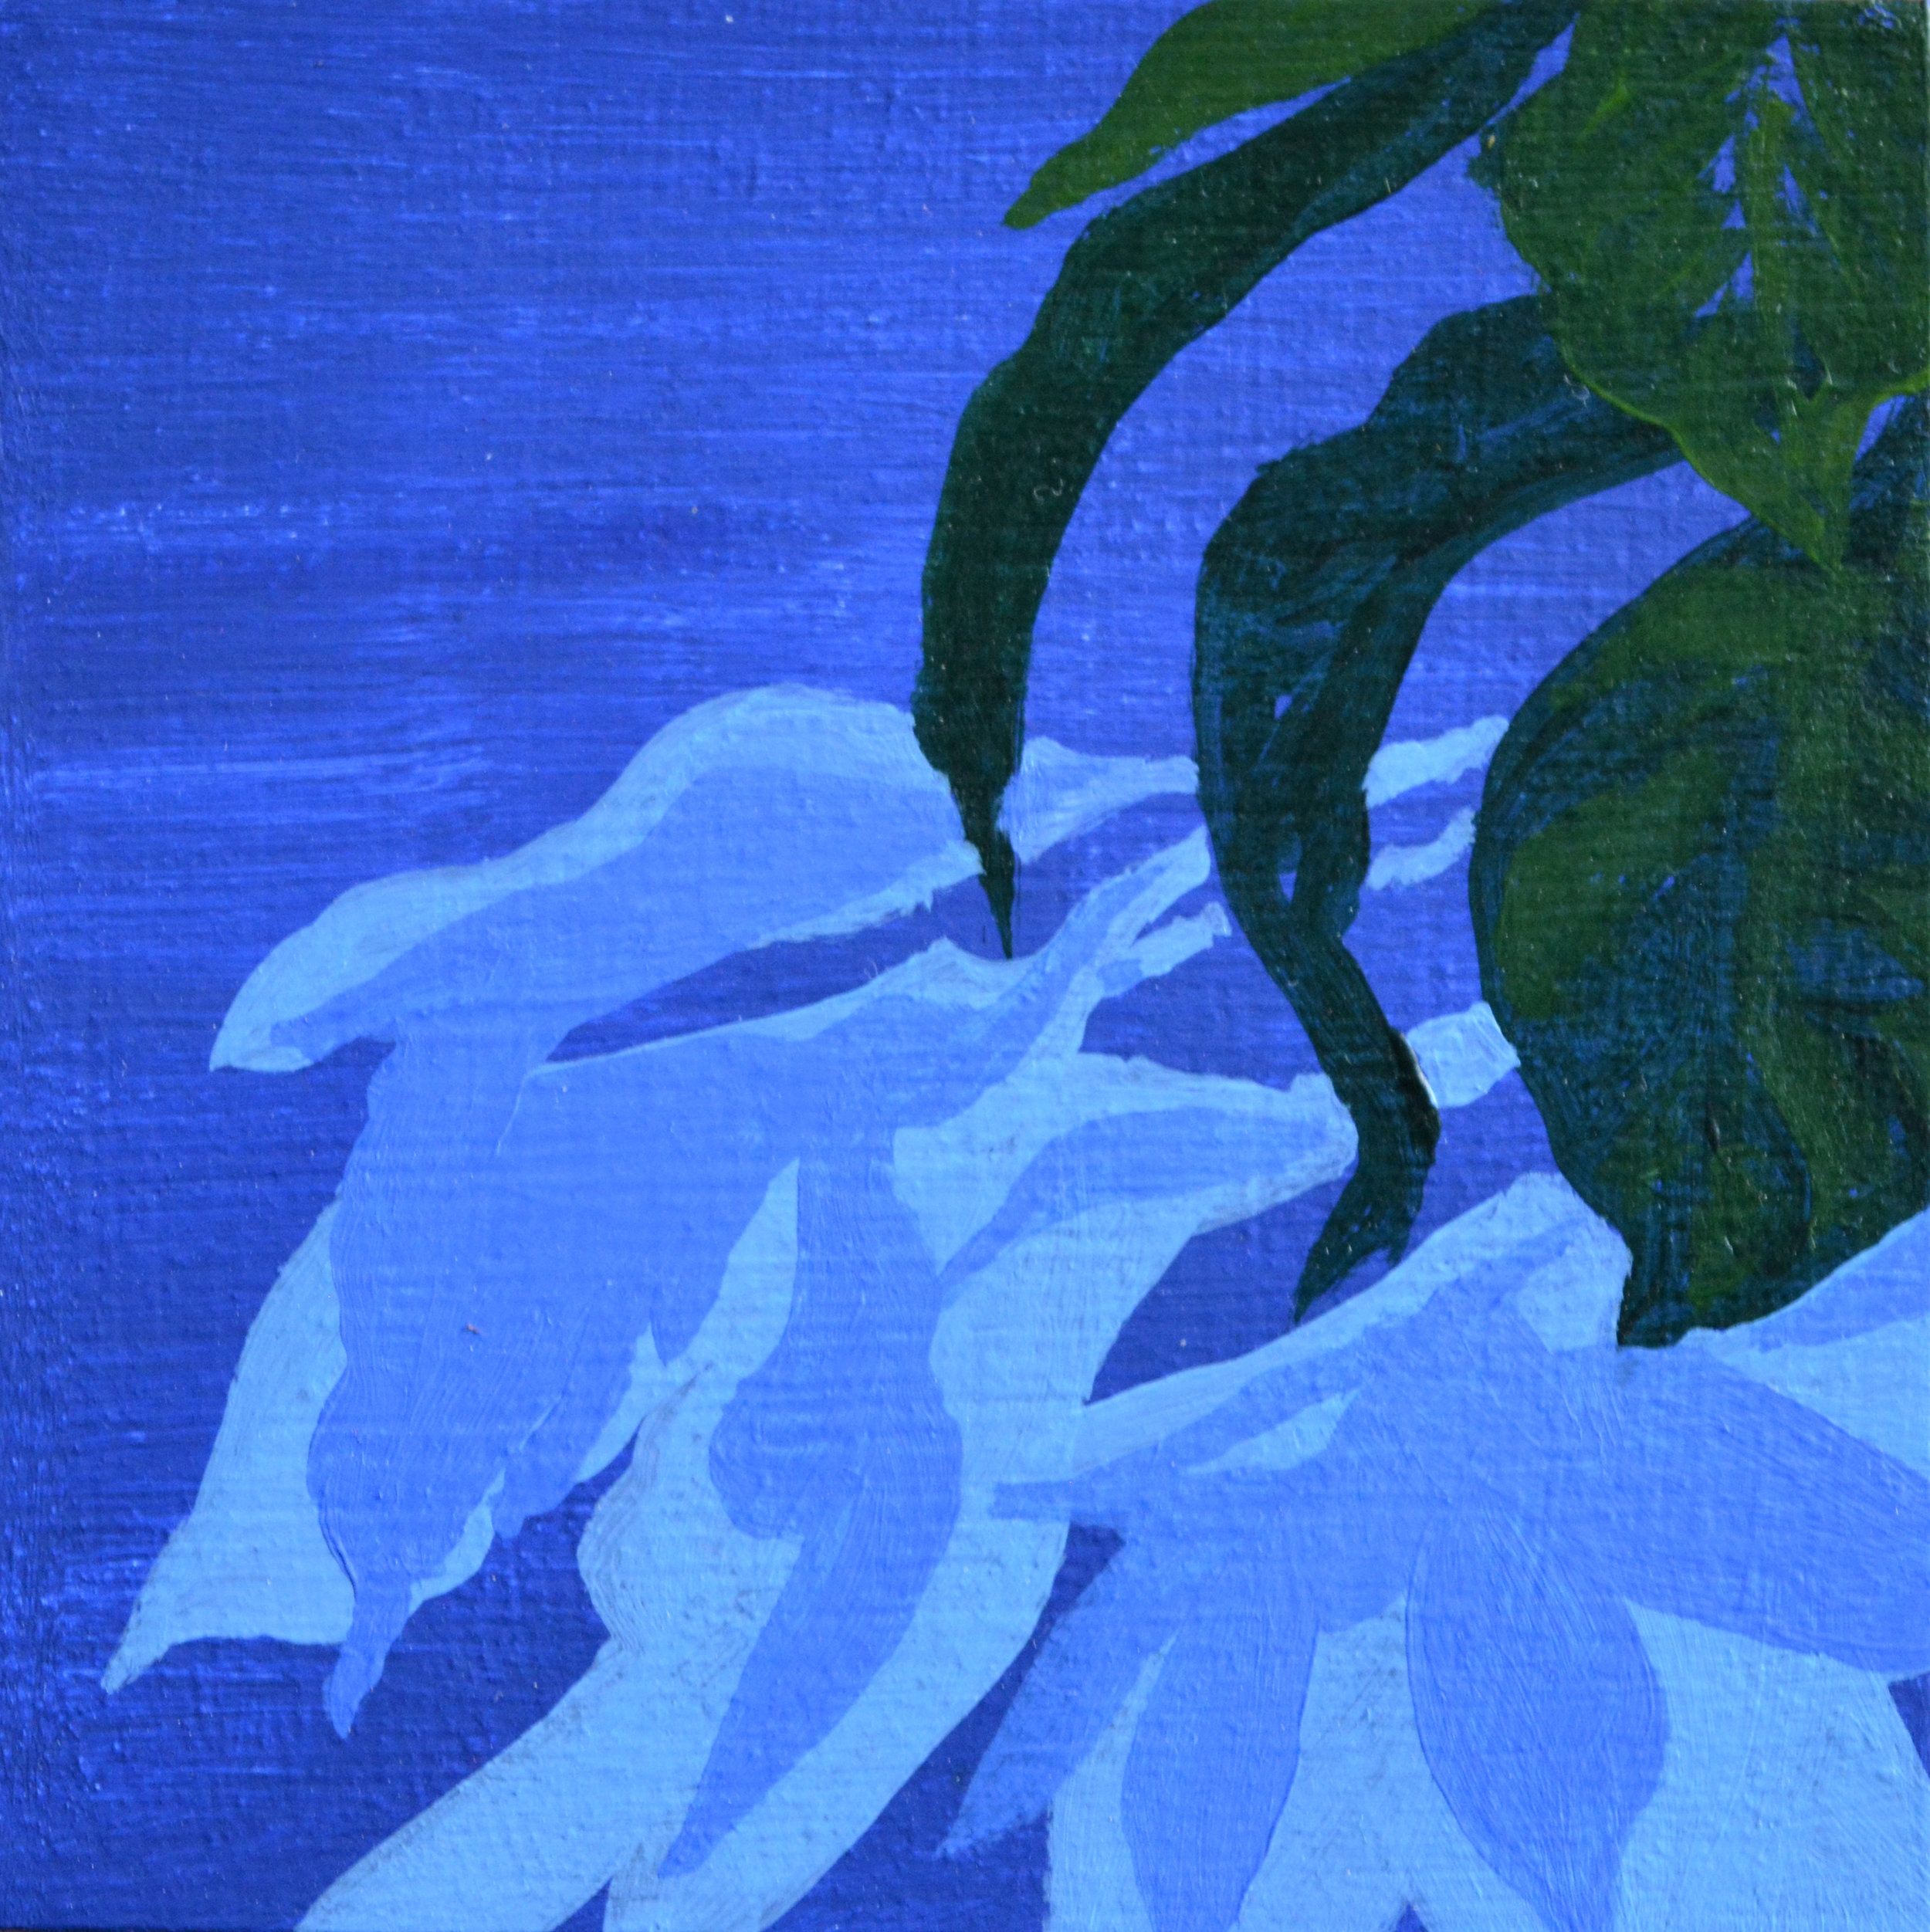 Shadow Play 1  4 x 4 inches, oil and acrylic on wood panel, 2018